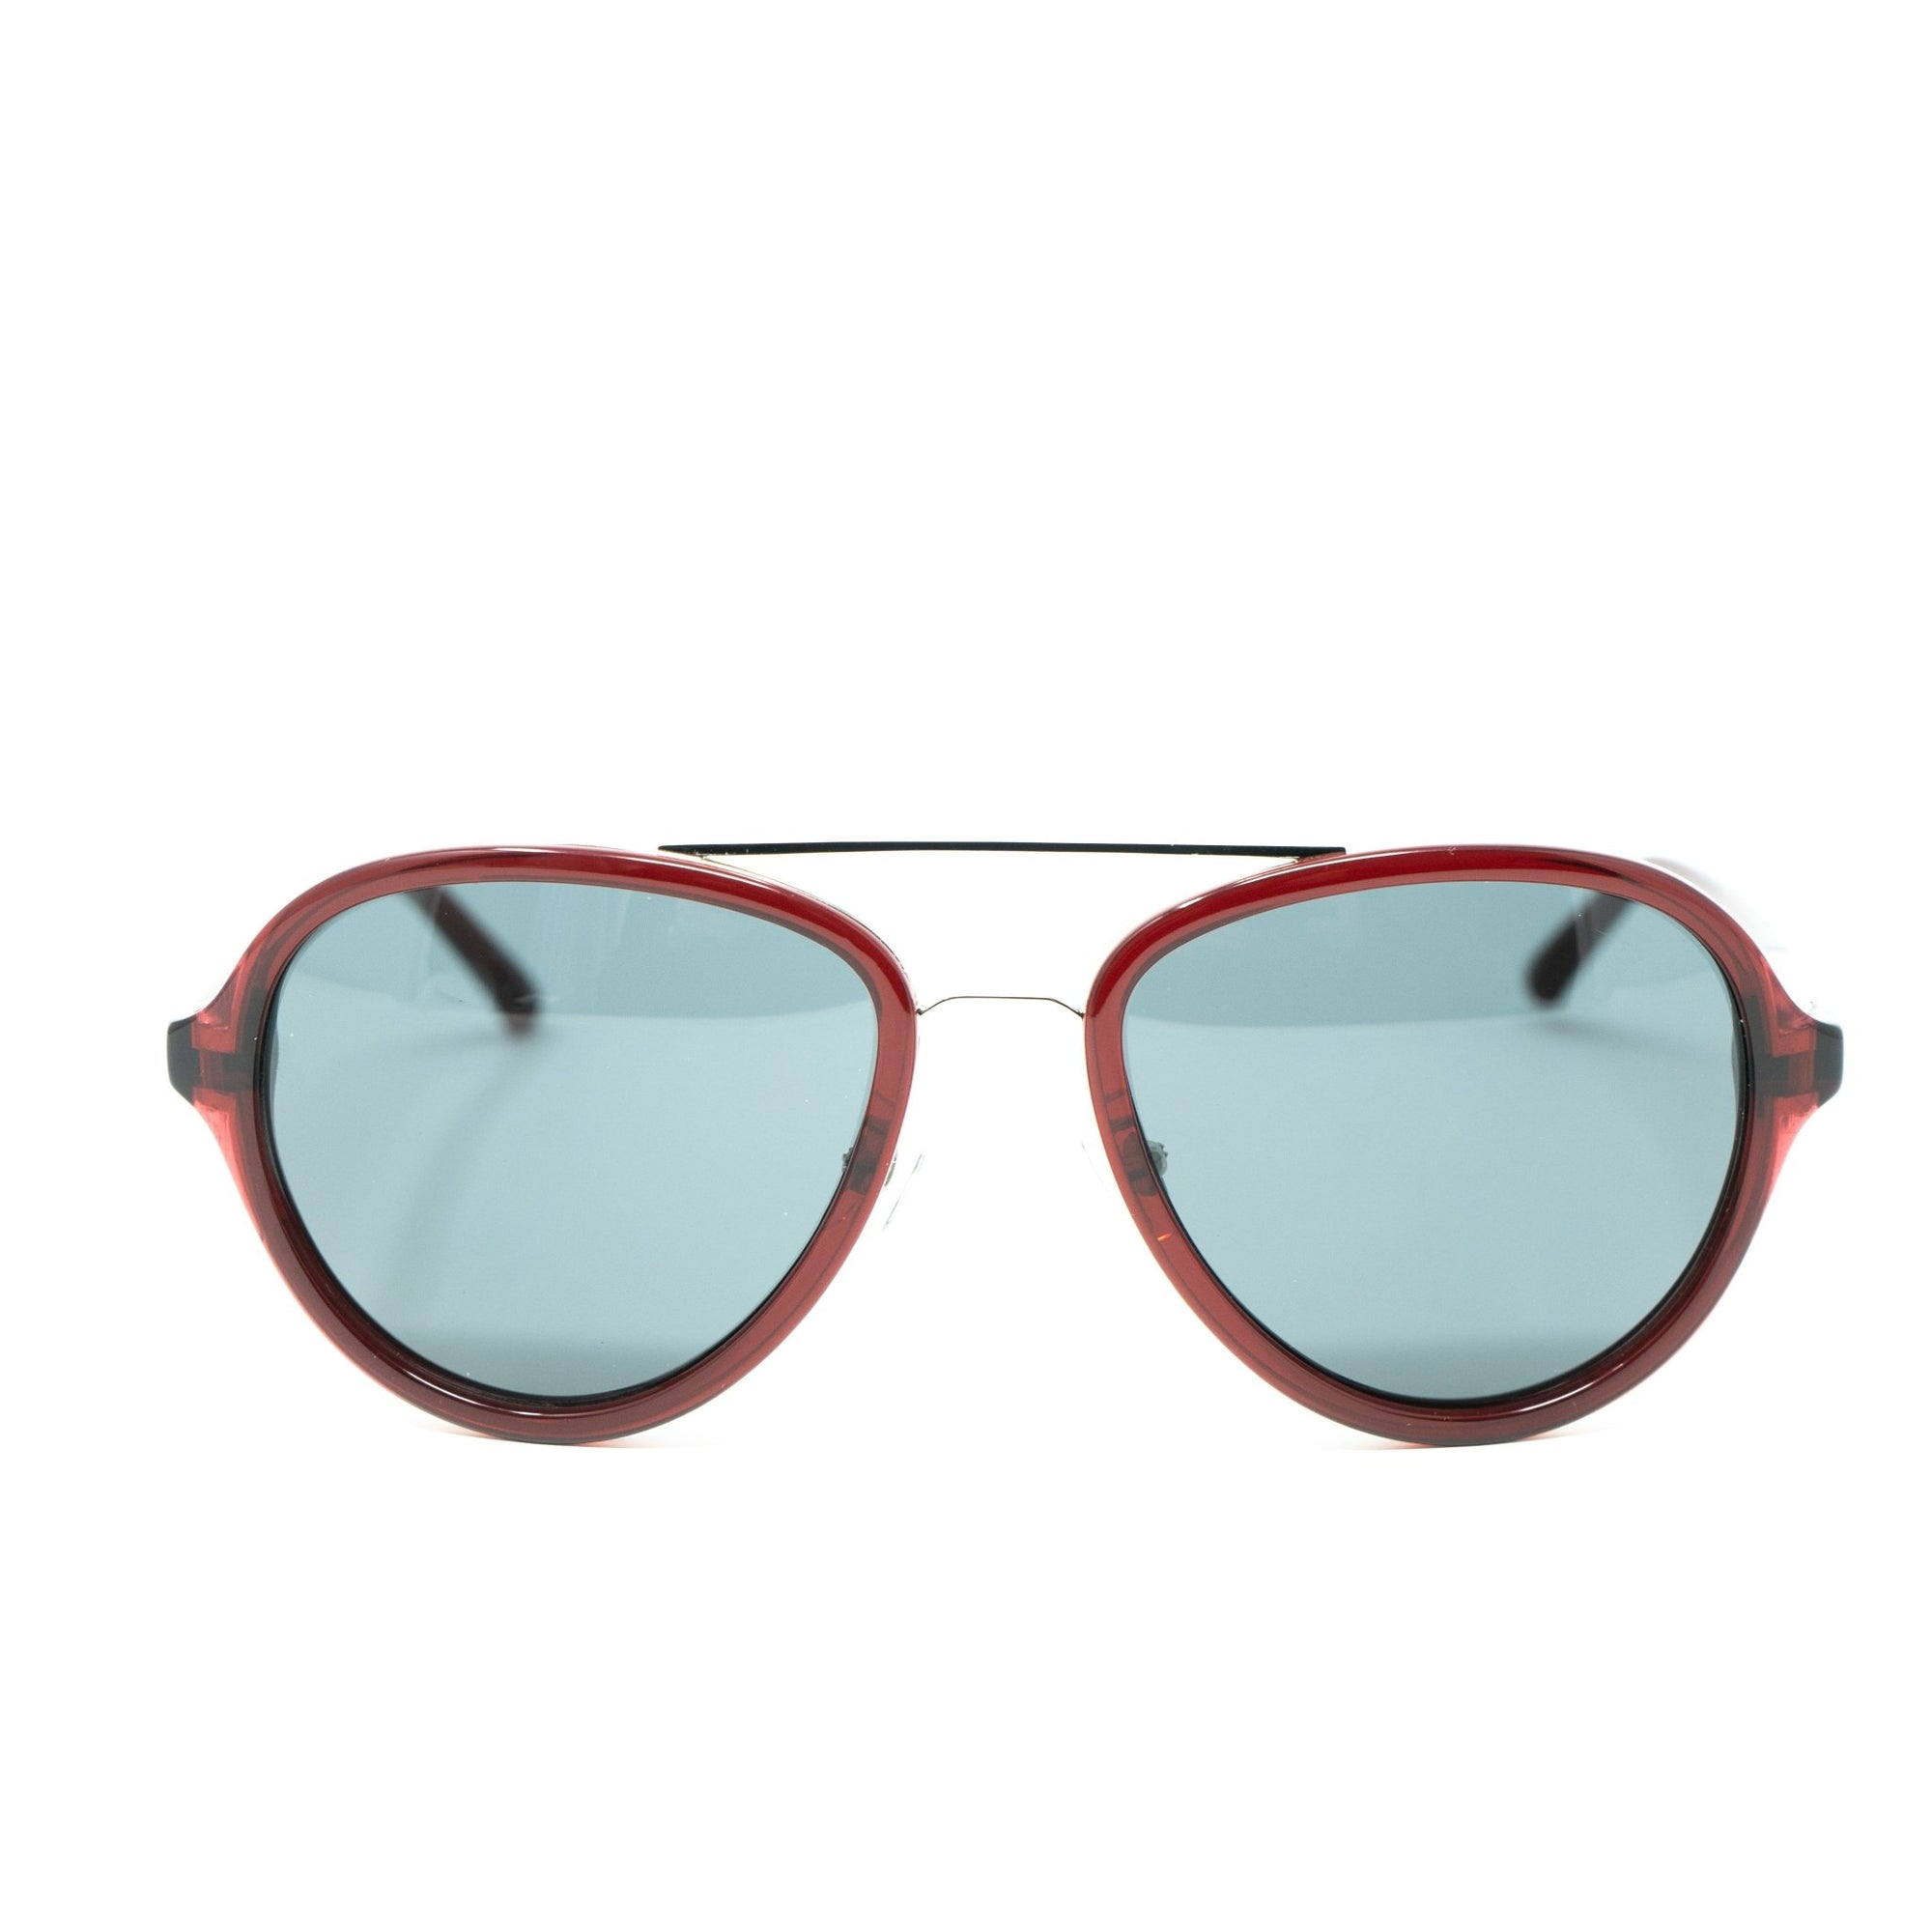 Phillip Lim Sunglasses Merlot Silver and Green Lenses Category 3 - PL16C31SUN - Watches & Crystals